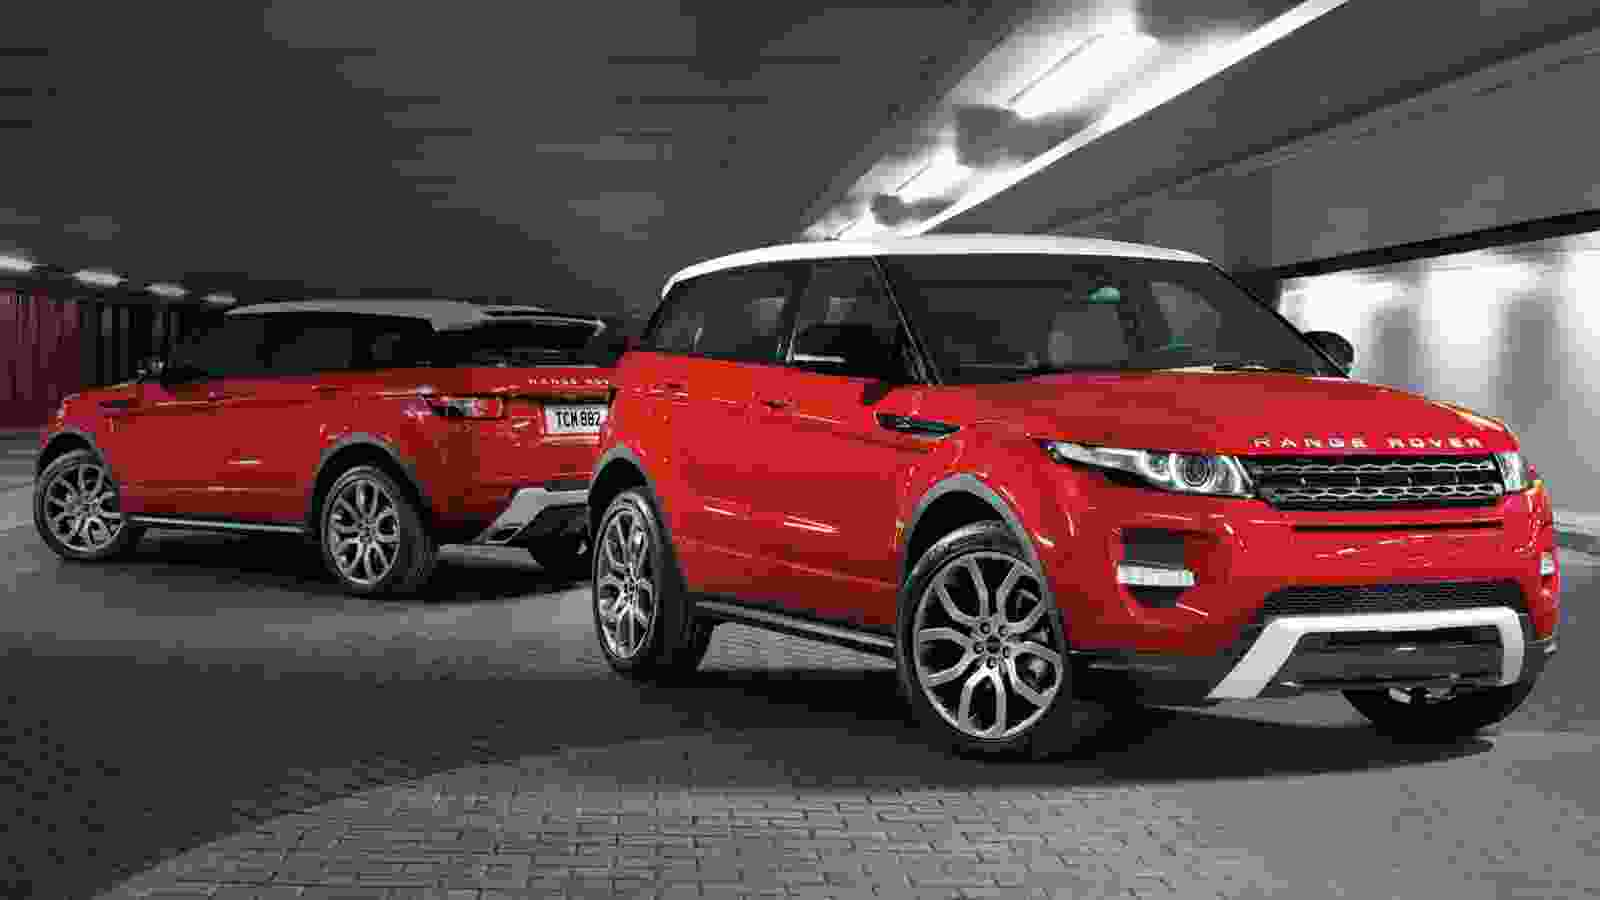 Land Rover used cars